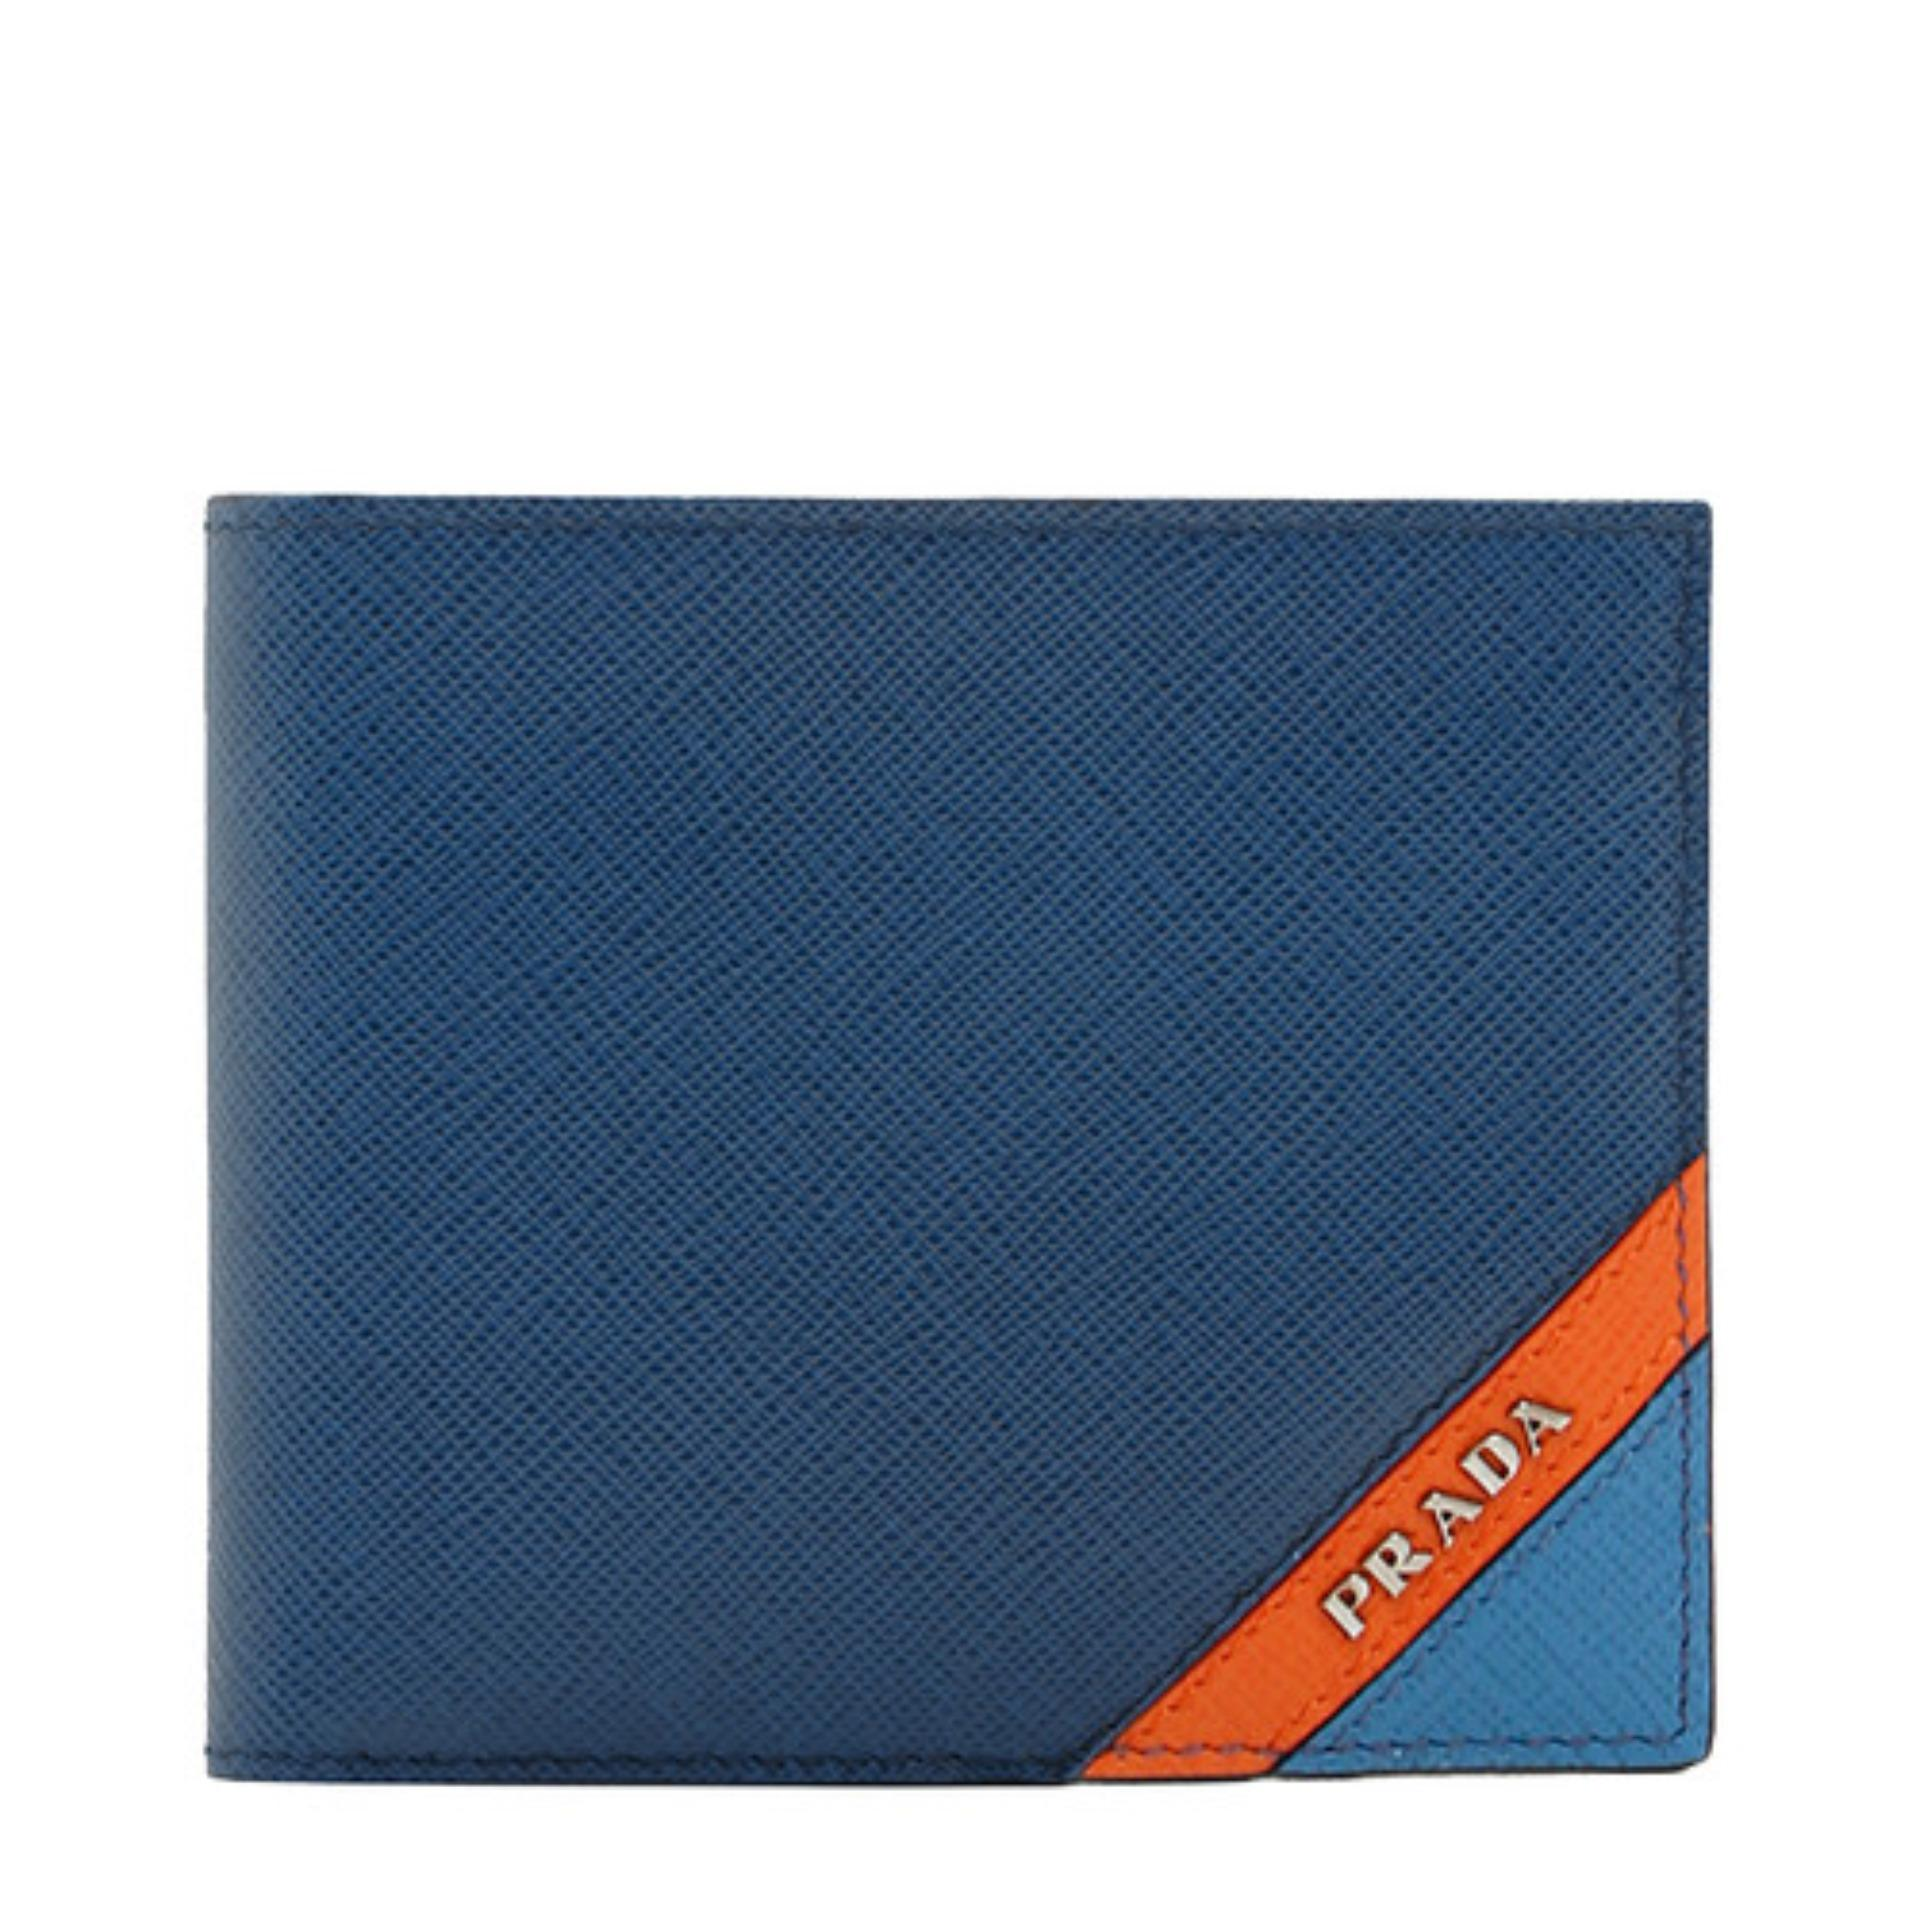 4ac1ffd0c2d2 Prada Saffiano Striped Bifold Wallet With Coin Pouch (Baltico/Rosso) #  2MO7382EGOF0UDP